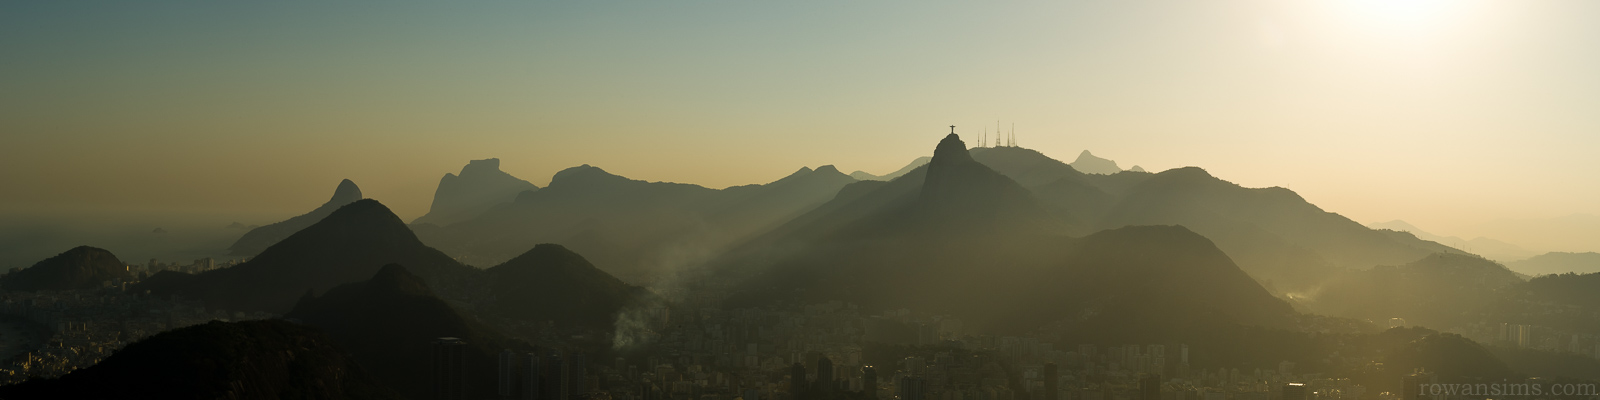 Panoramic landscape photo of mountains over Rio de Janeiro, Brazil